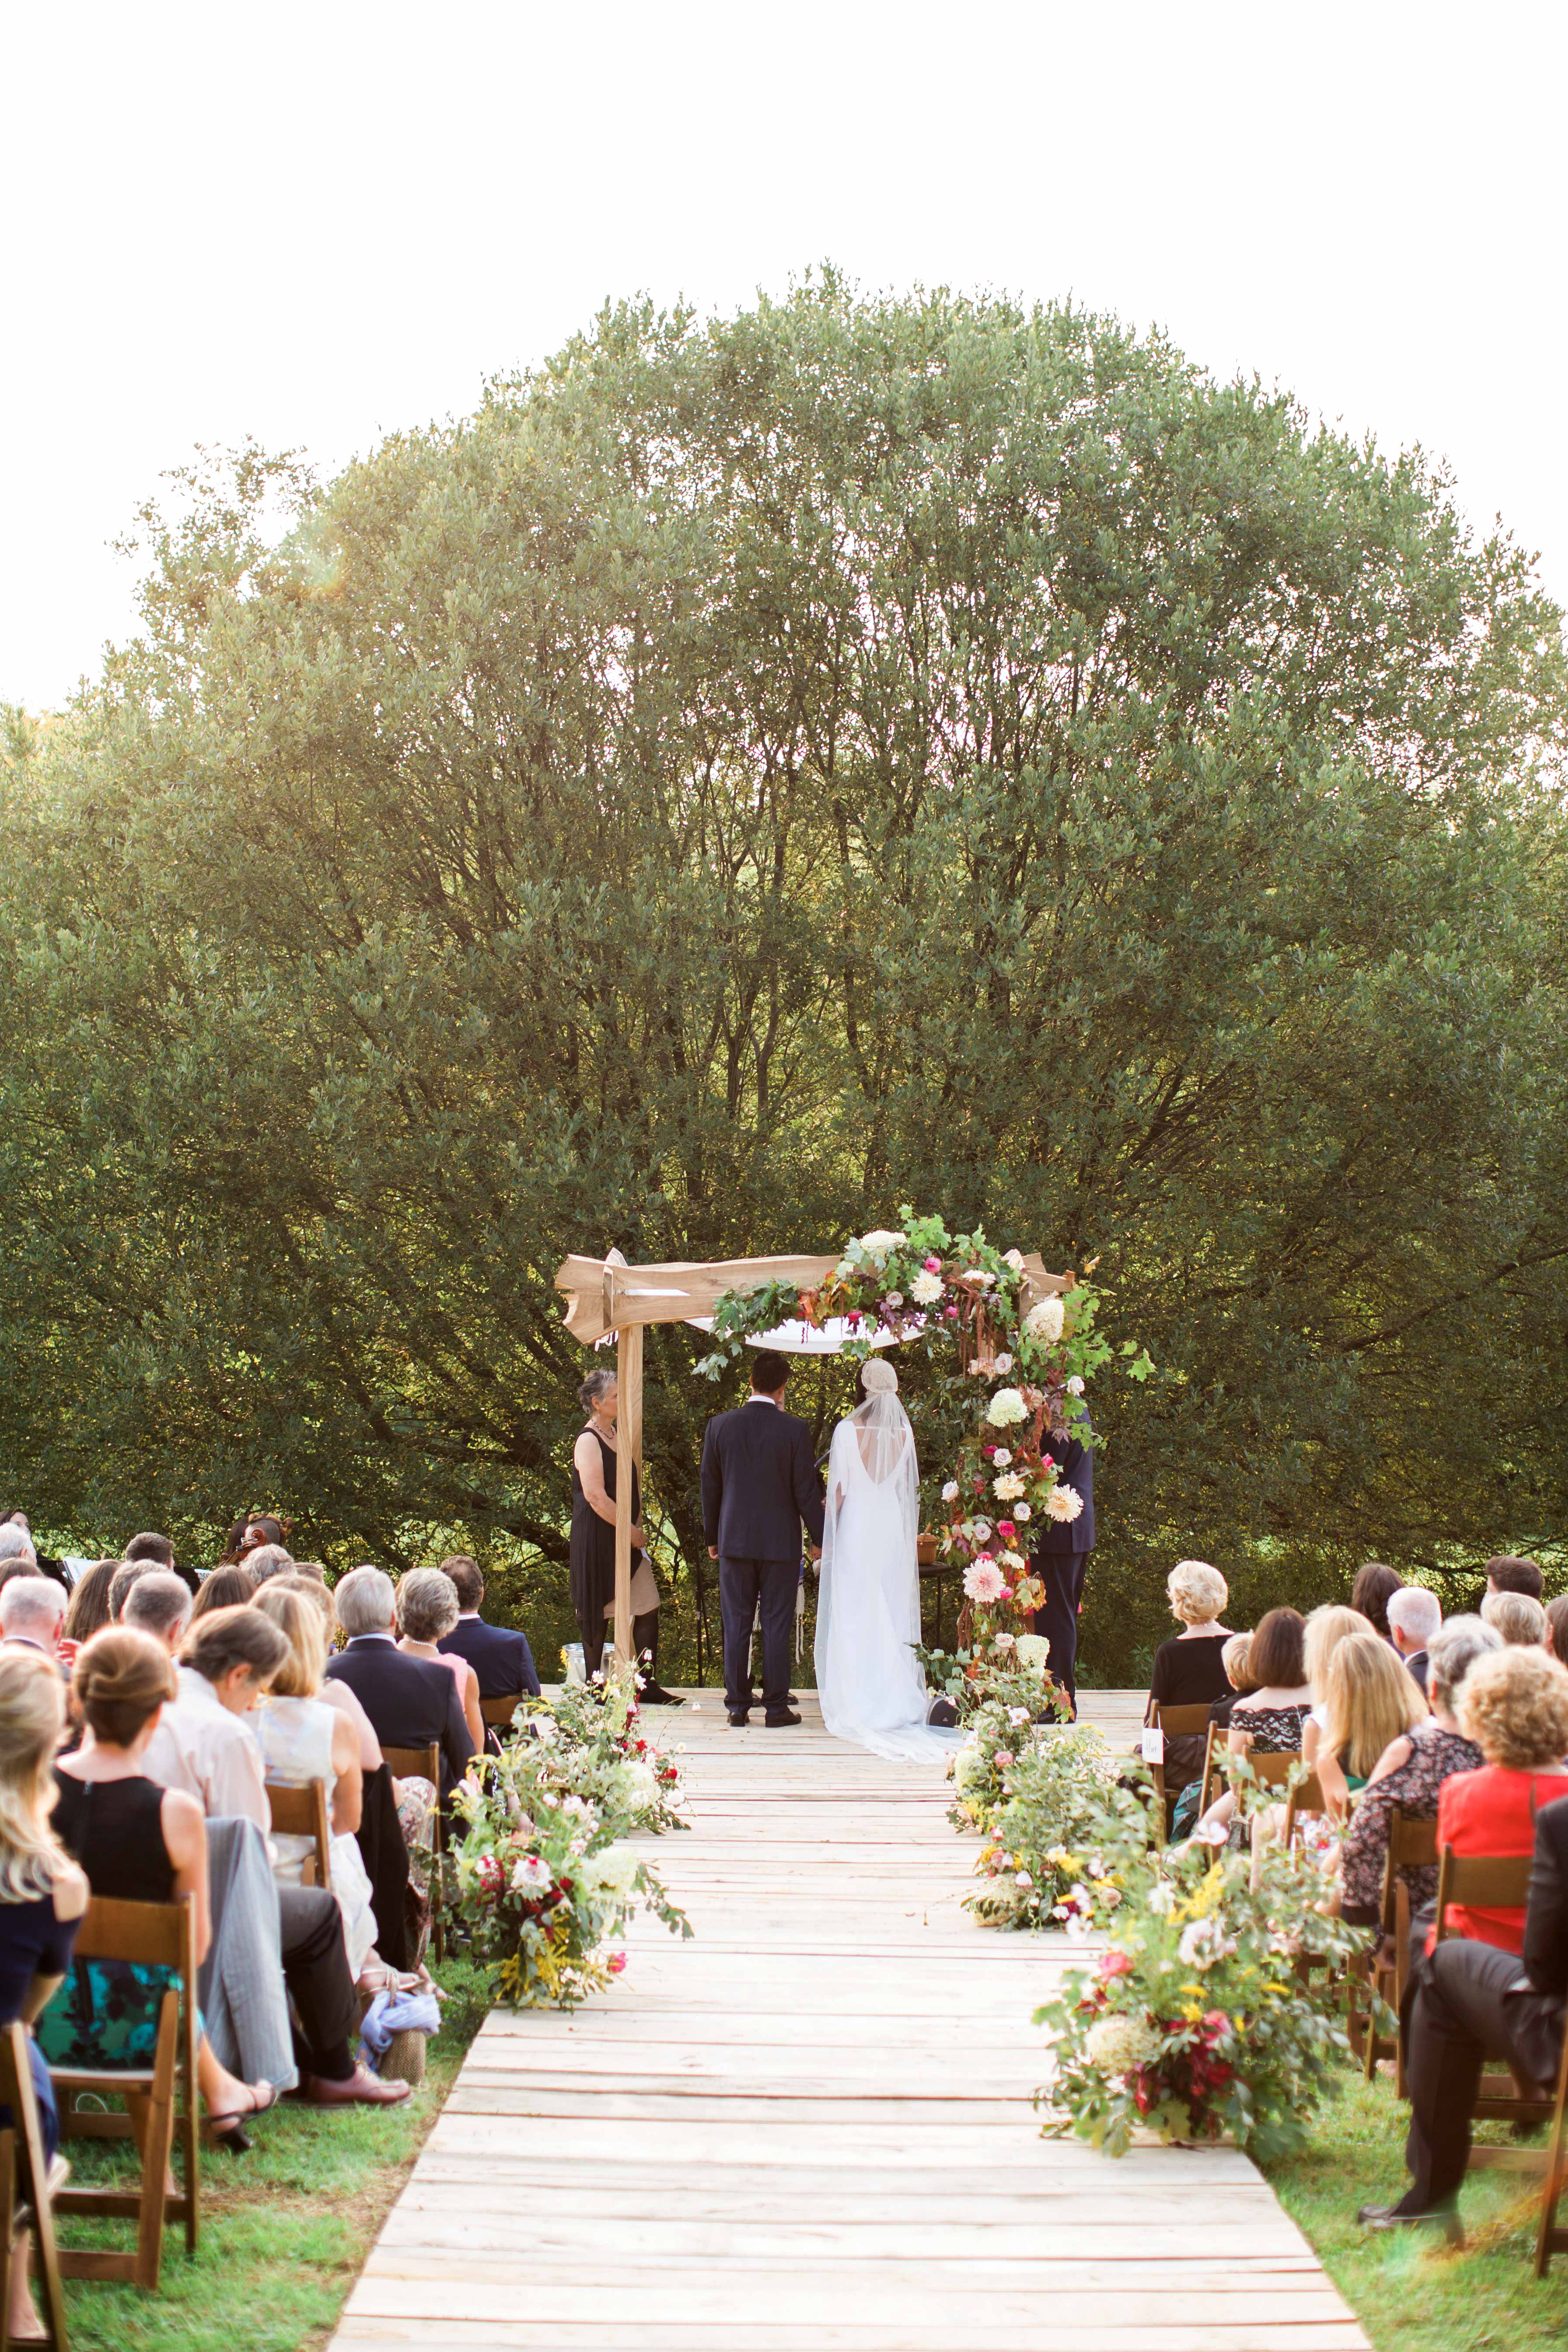 An Ultra Personal Wedding On The Groom S Family Farm In New York